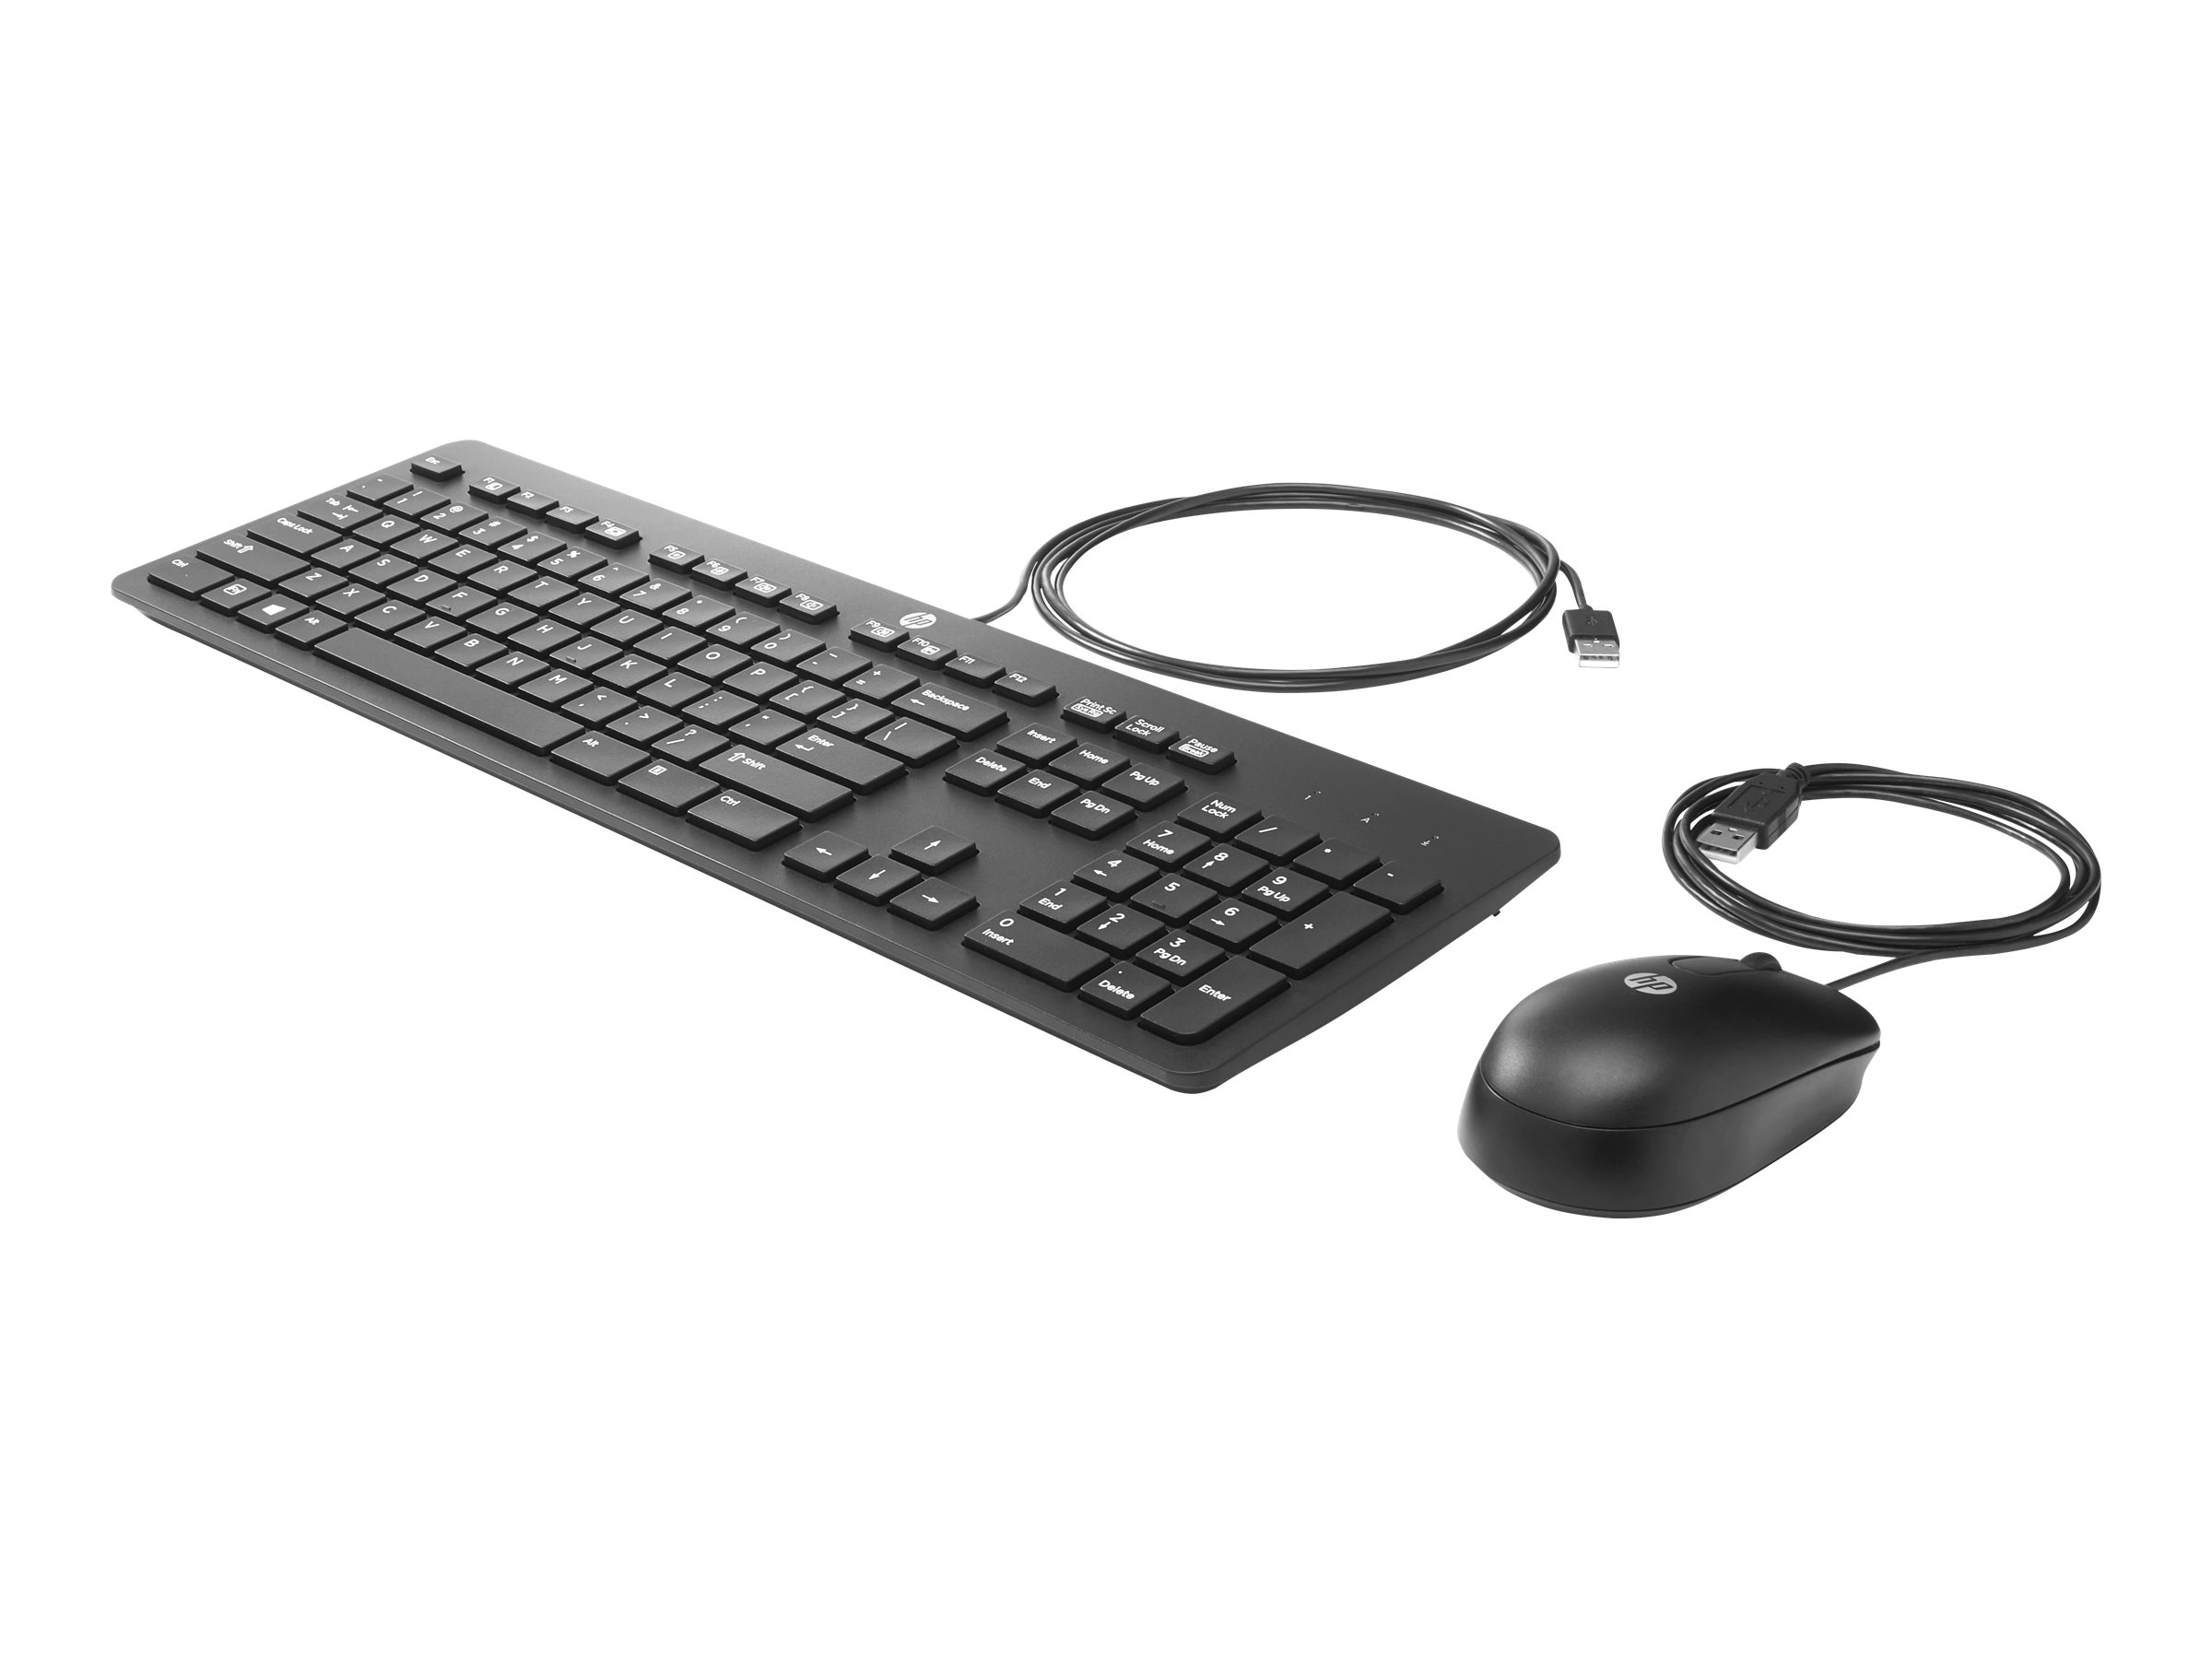 HP Business Slim - keyboard and mouse set